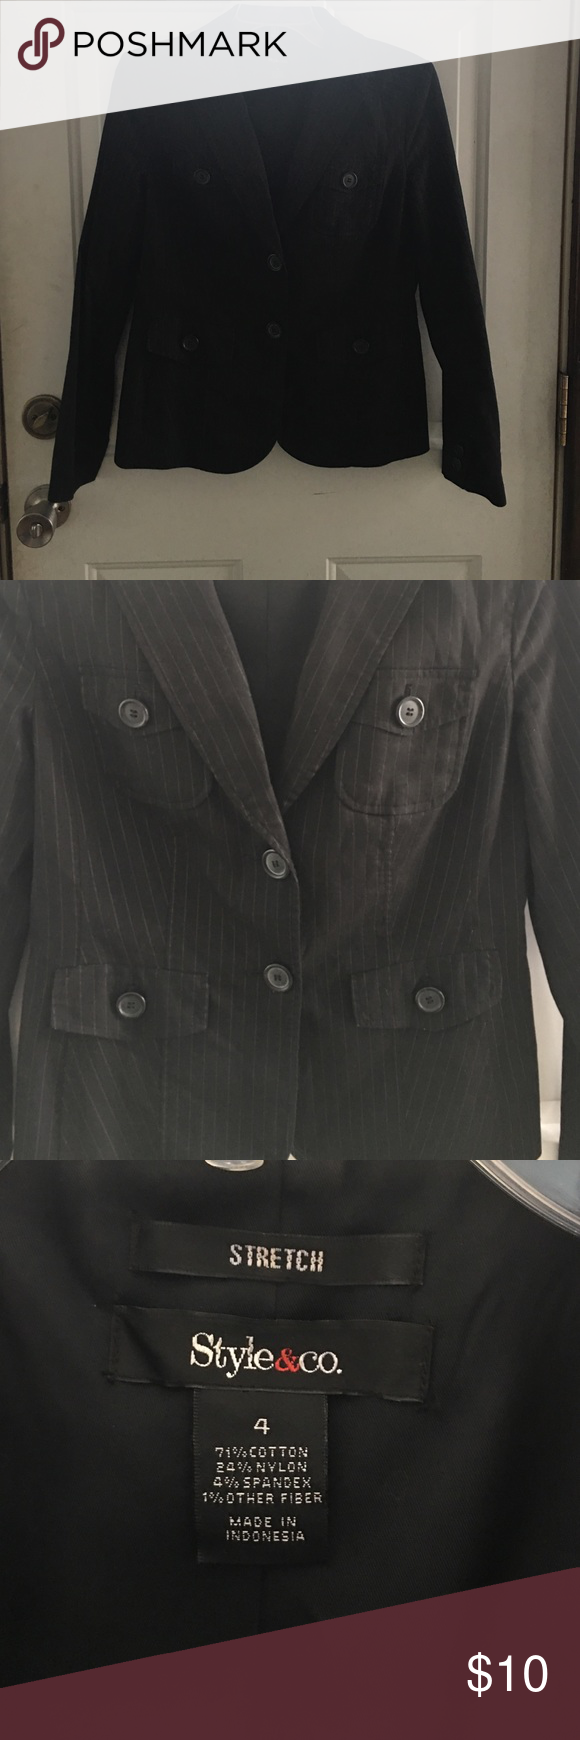 Black Pen Stripped Blazer Black pen stripped blazer with buttons and 4 pockets. Belt buckle in back. Style & Co Jackets & Coats Blazers